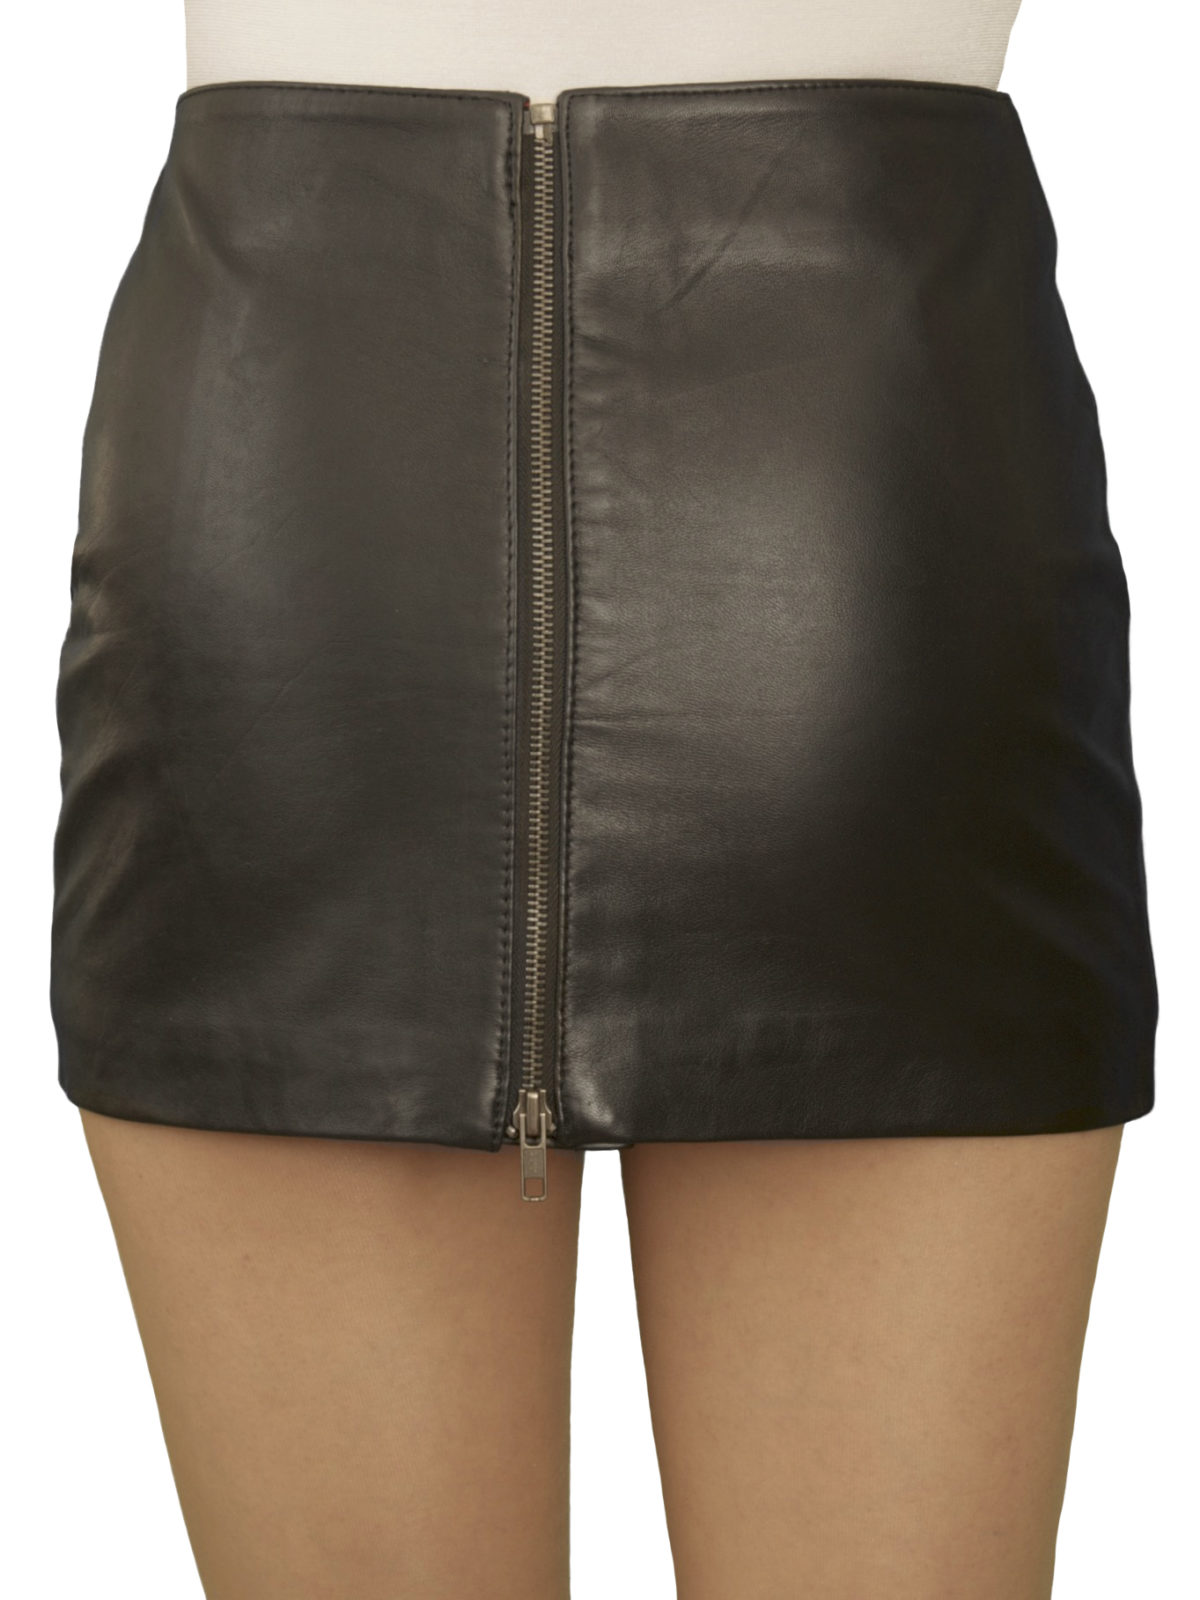 ultra short soft black leather mini skirt with full rear